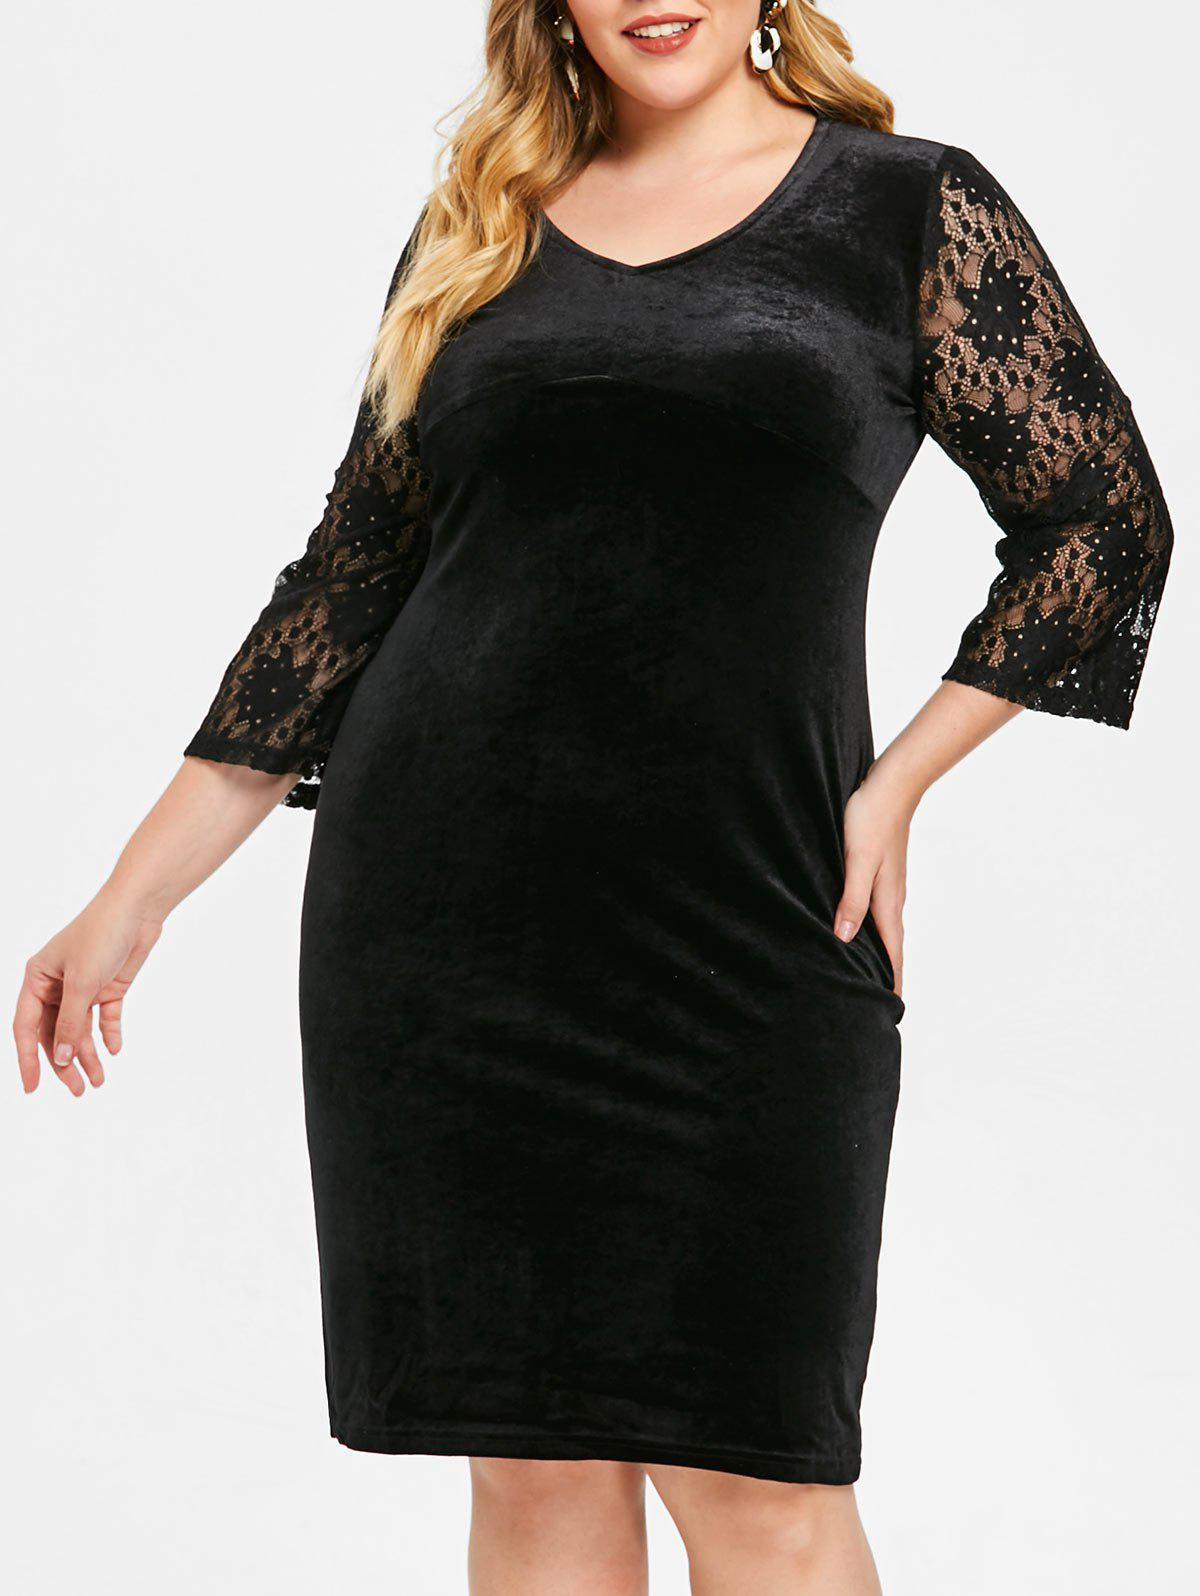 New V Neck Plus Size Knee Length Velvet Dress